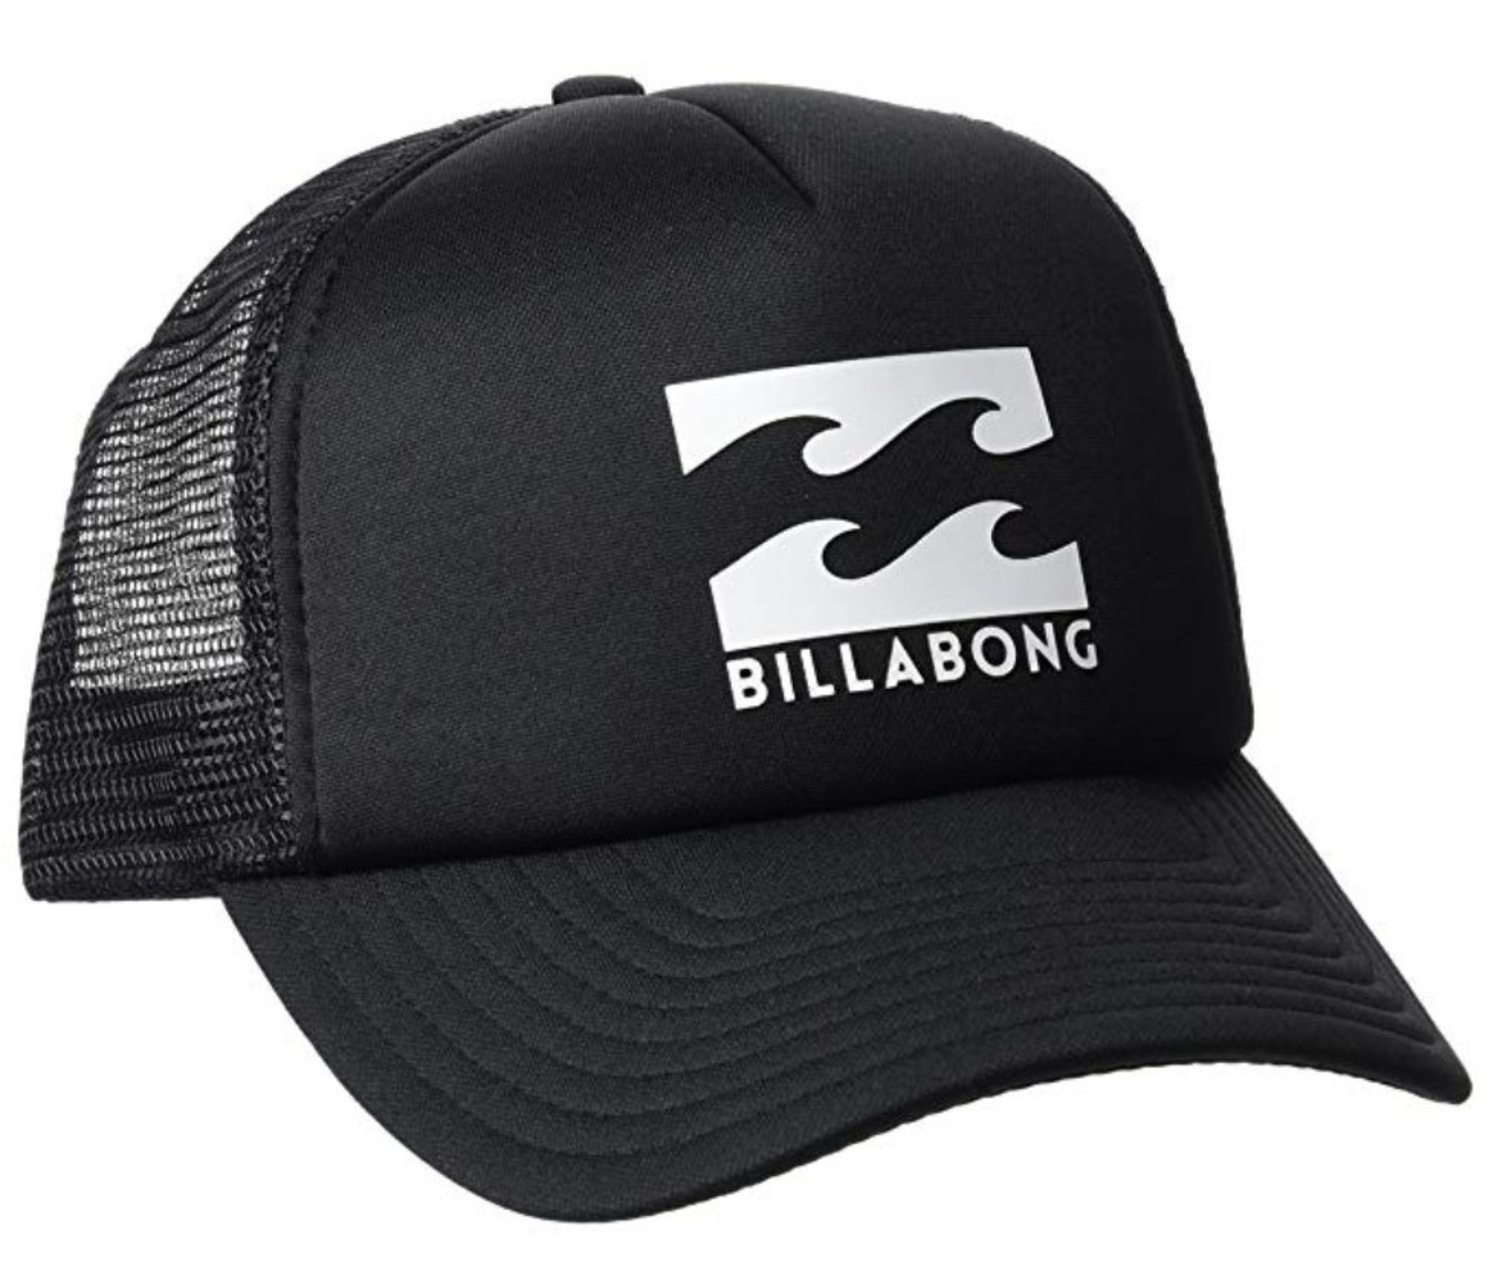 Gorra trucker de Billabong.